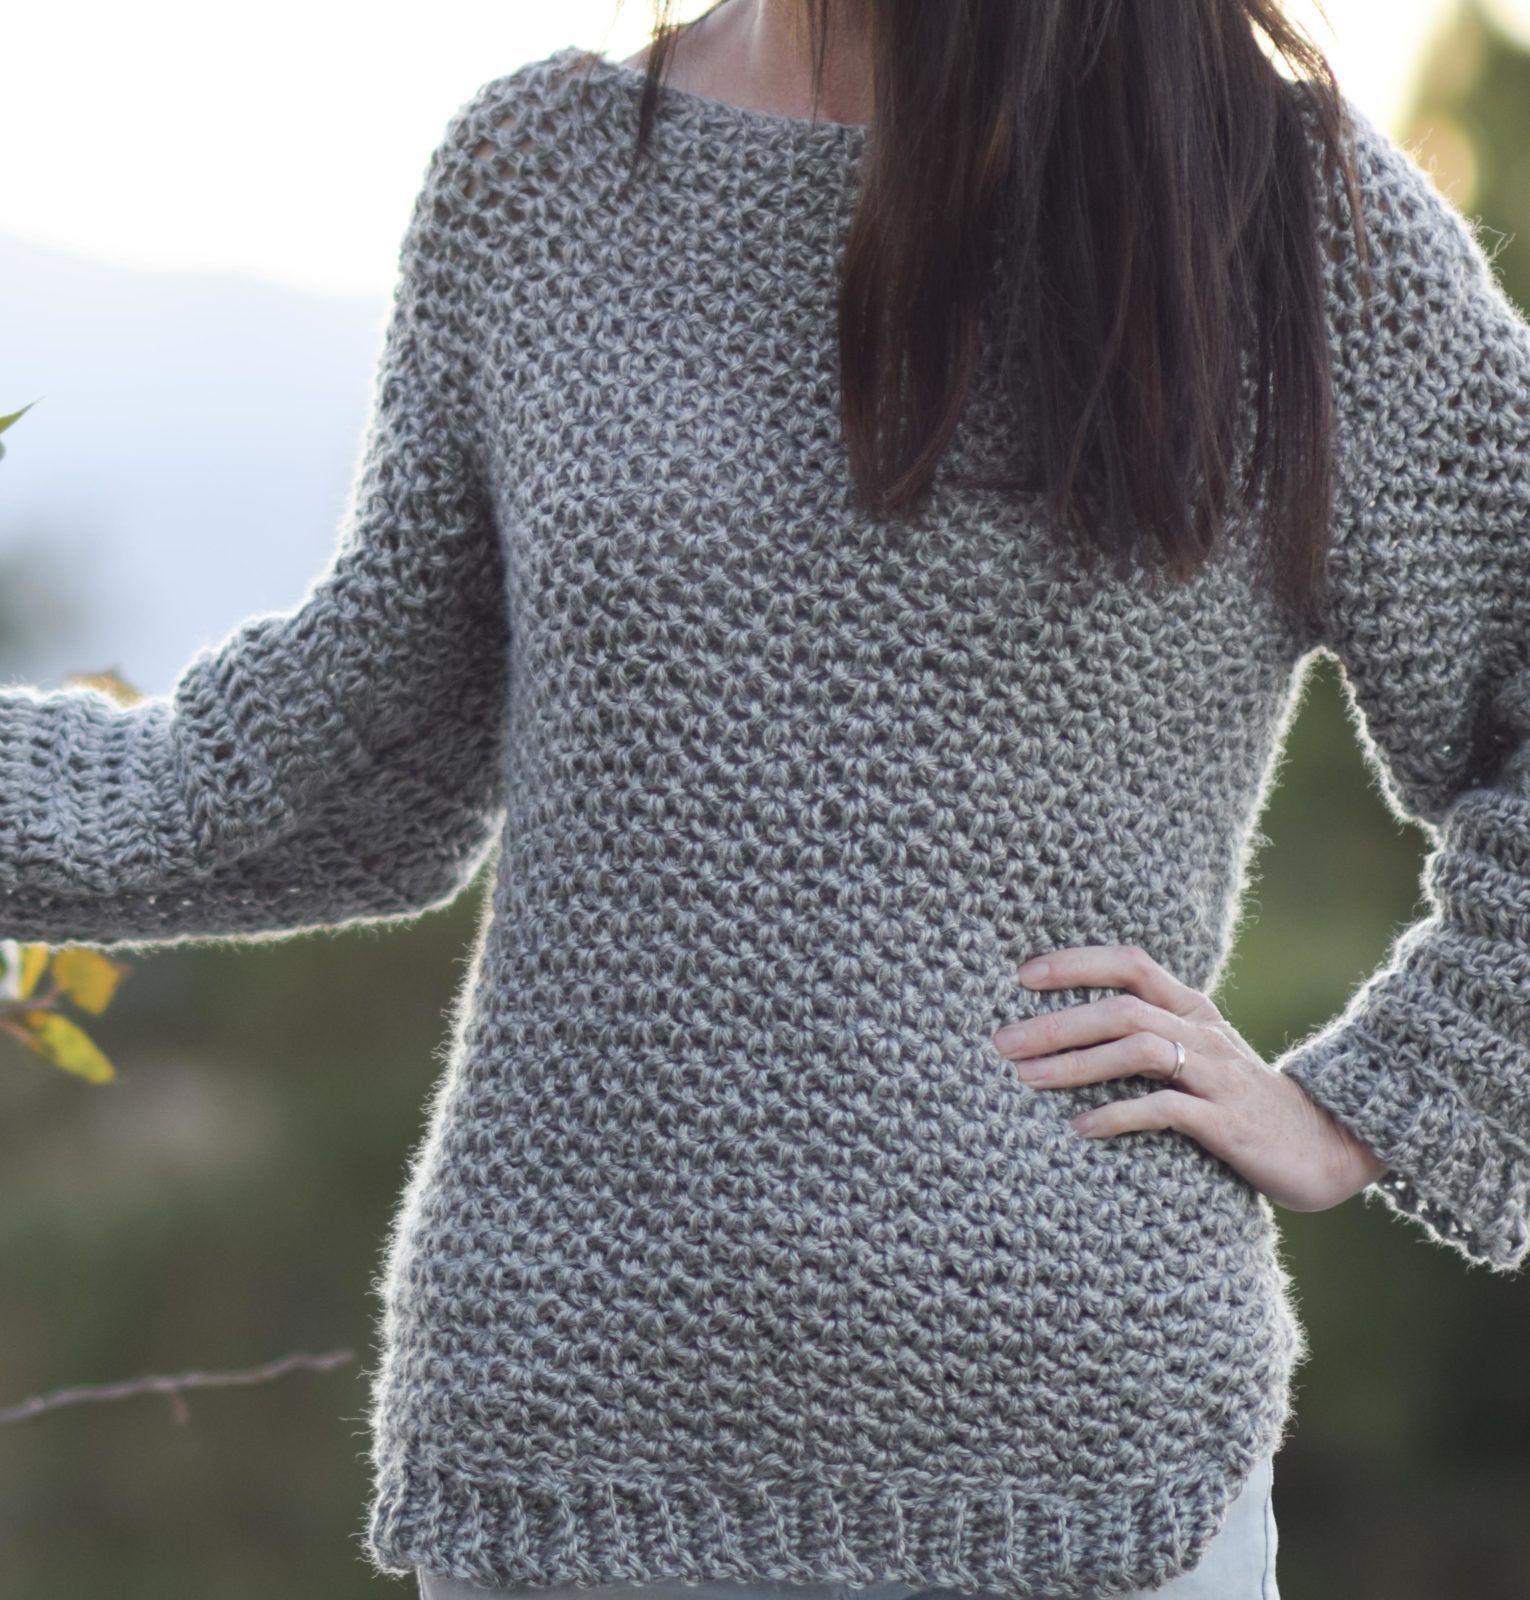 Free Crochet Patterns That Look Knit | Pinterest | Hacer ropa, Cosas ...